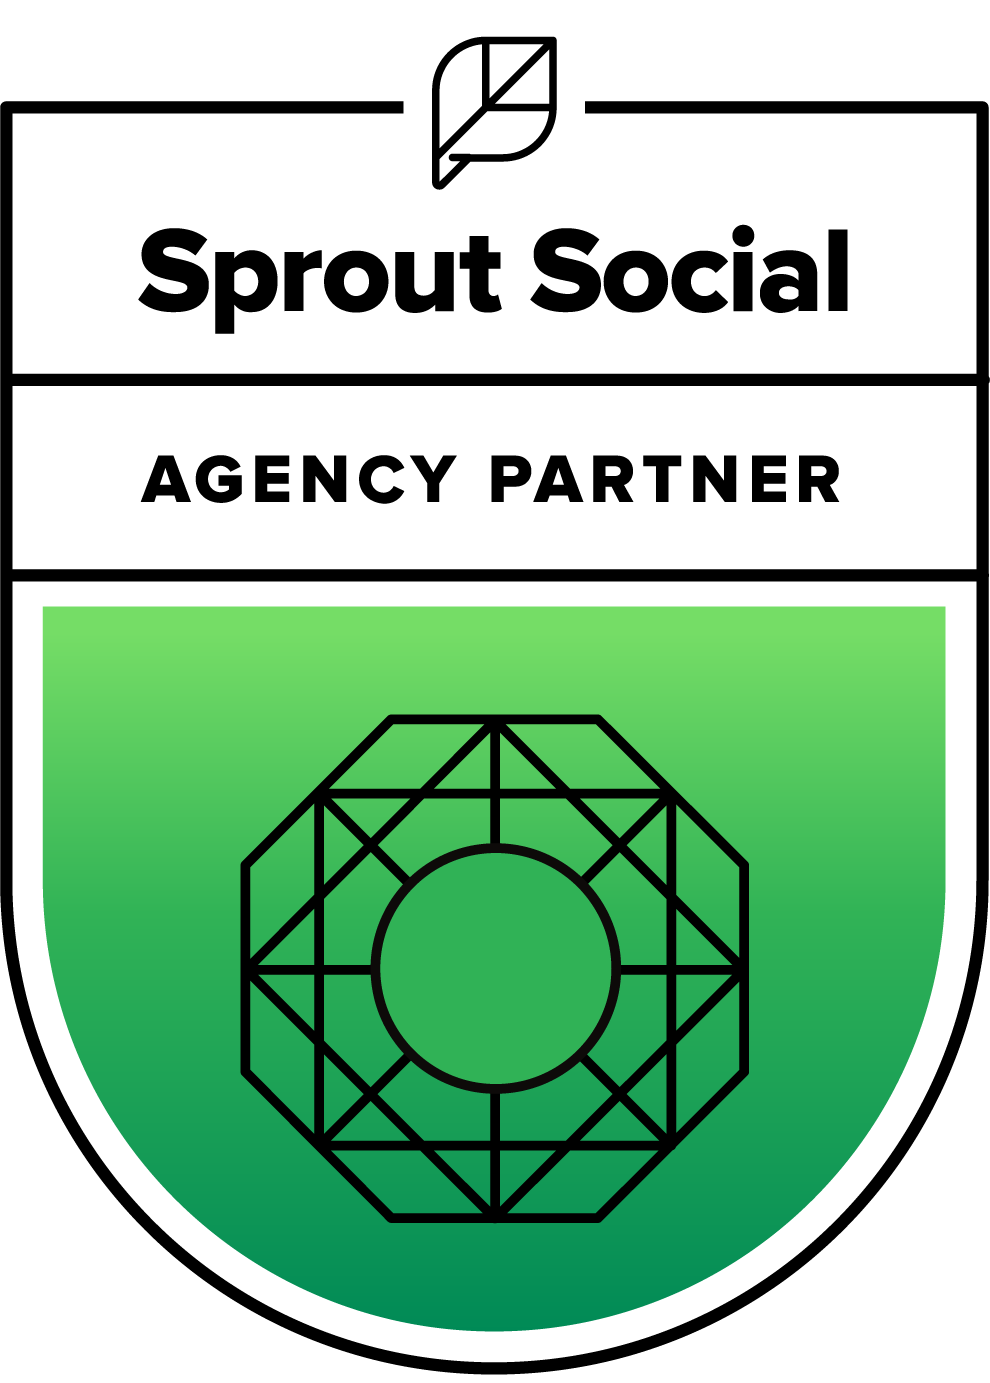 https://sherpa2017.blob.core.windows.net/images/partners/sprout-social-partner-badge.png